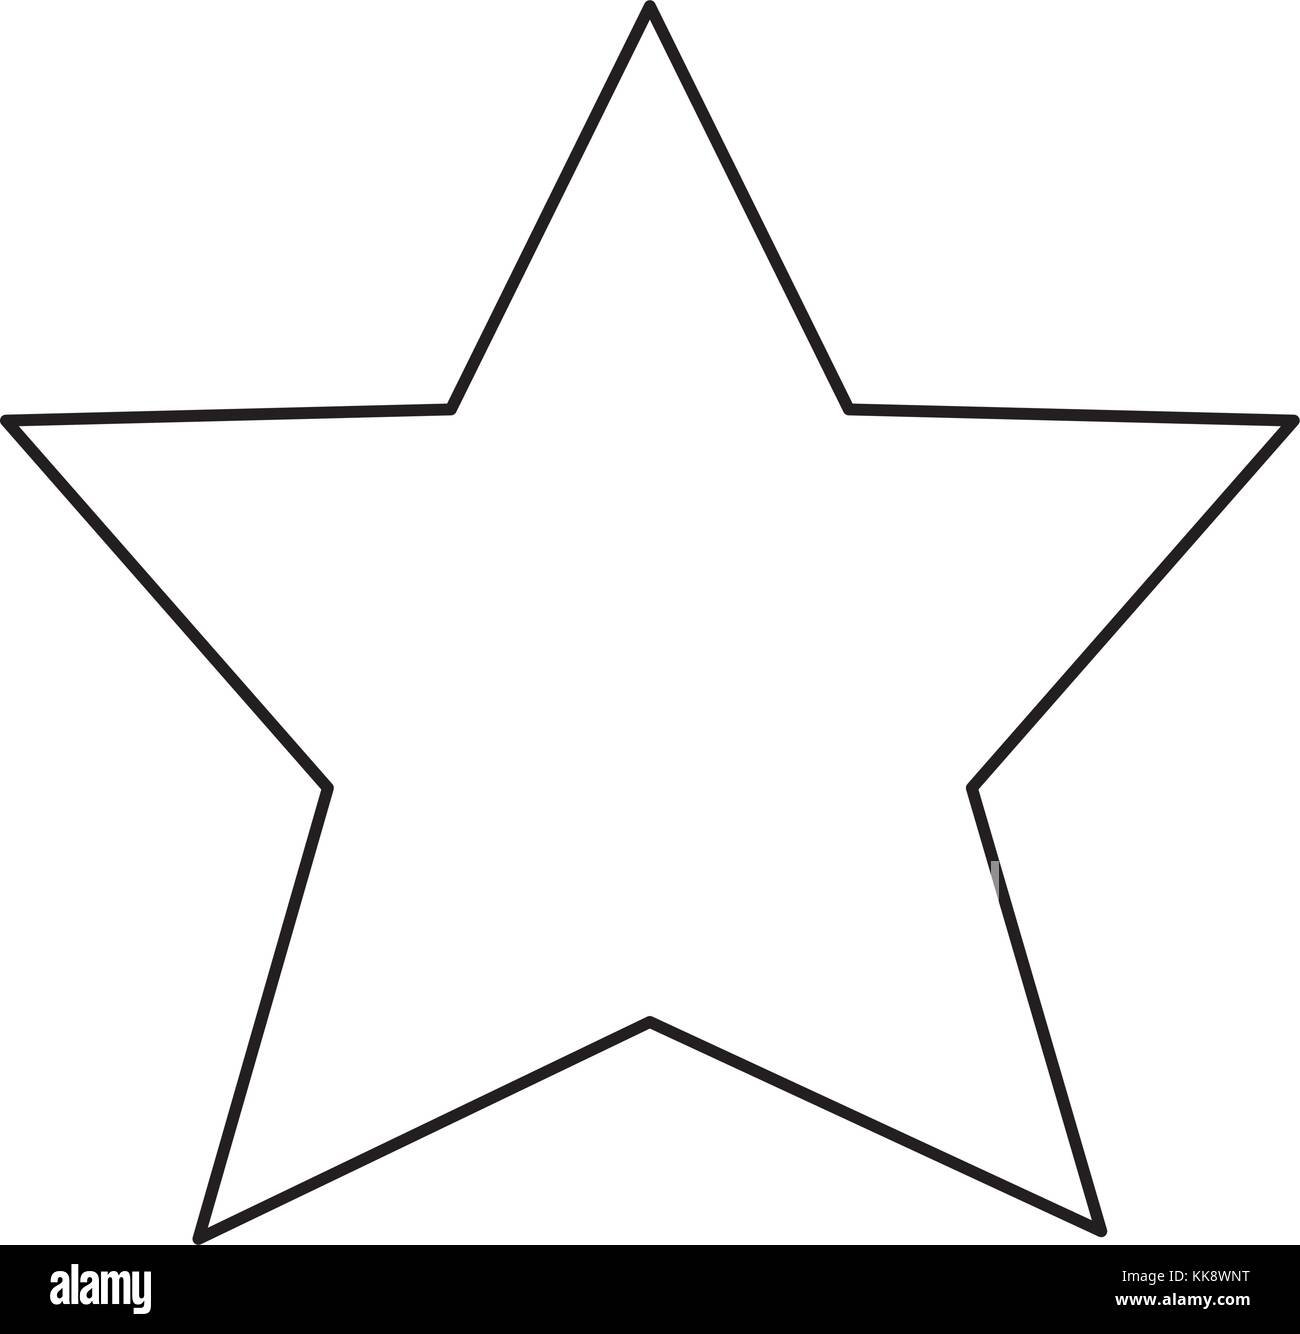 Star vector illustration Photo Stock